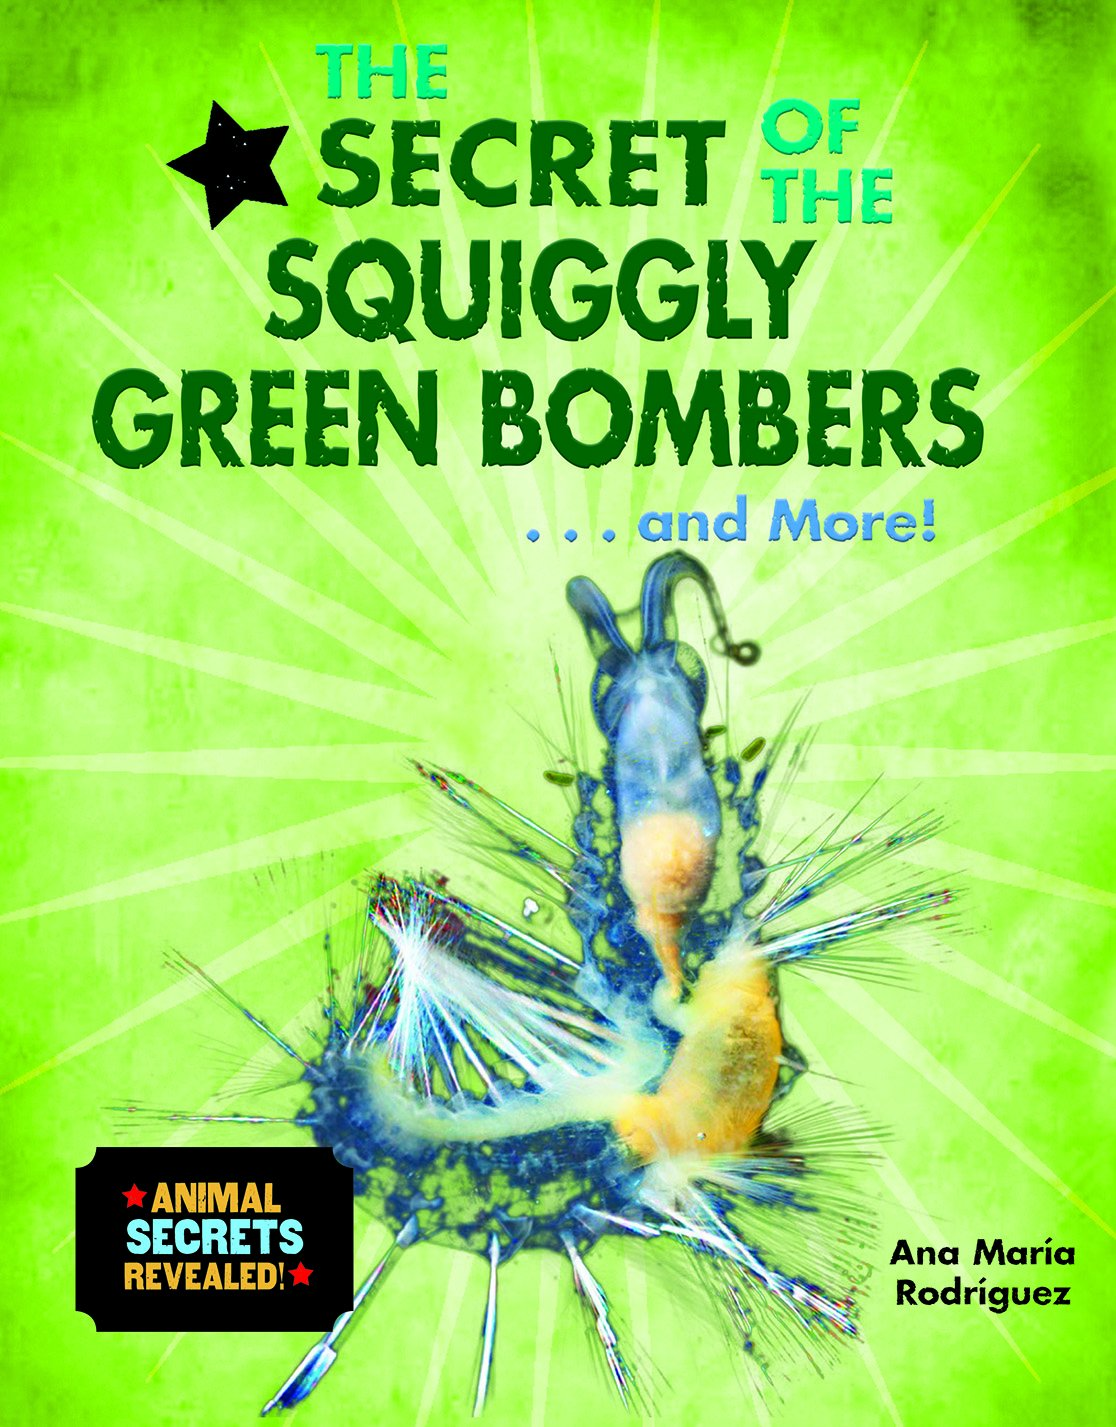 Download The Secret of the Squiggly Green Bombers. and More! (Animal Secrets Revealed!) ebook